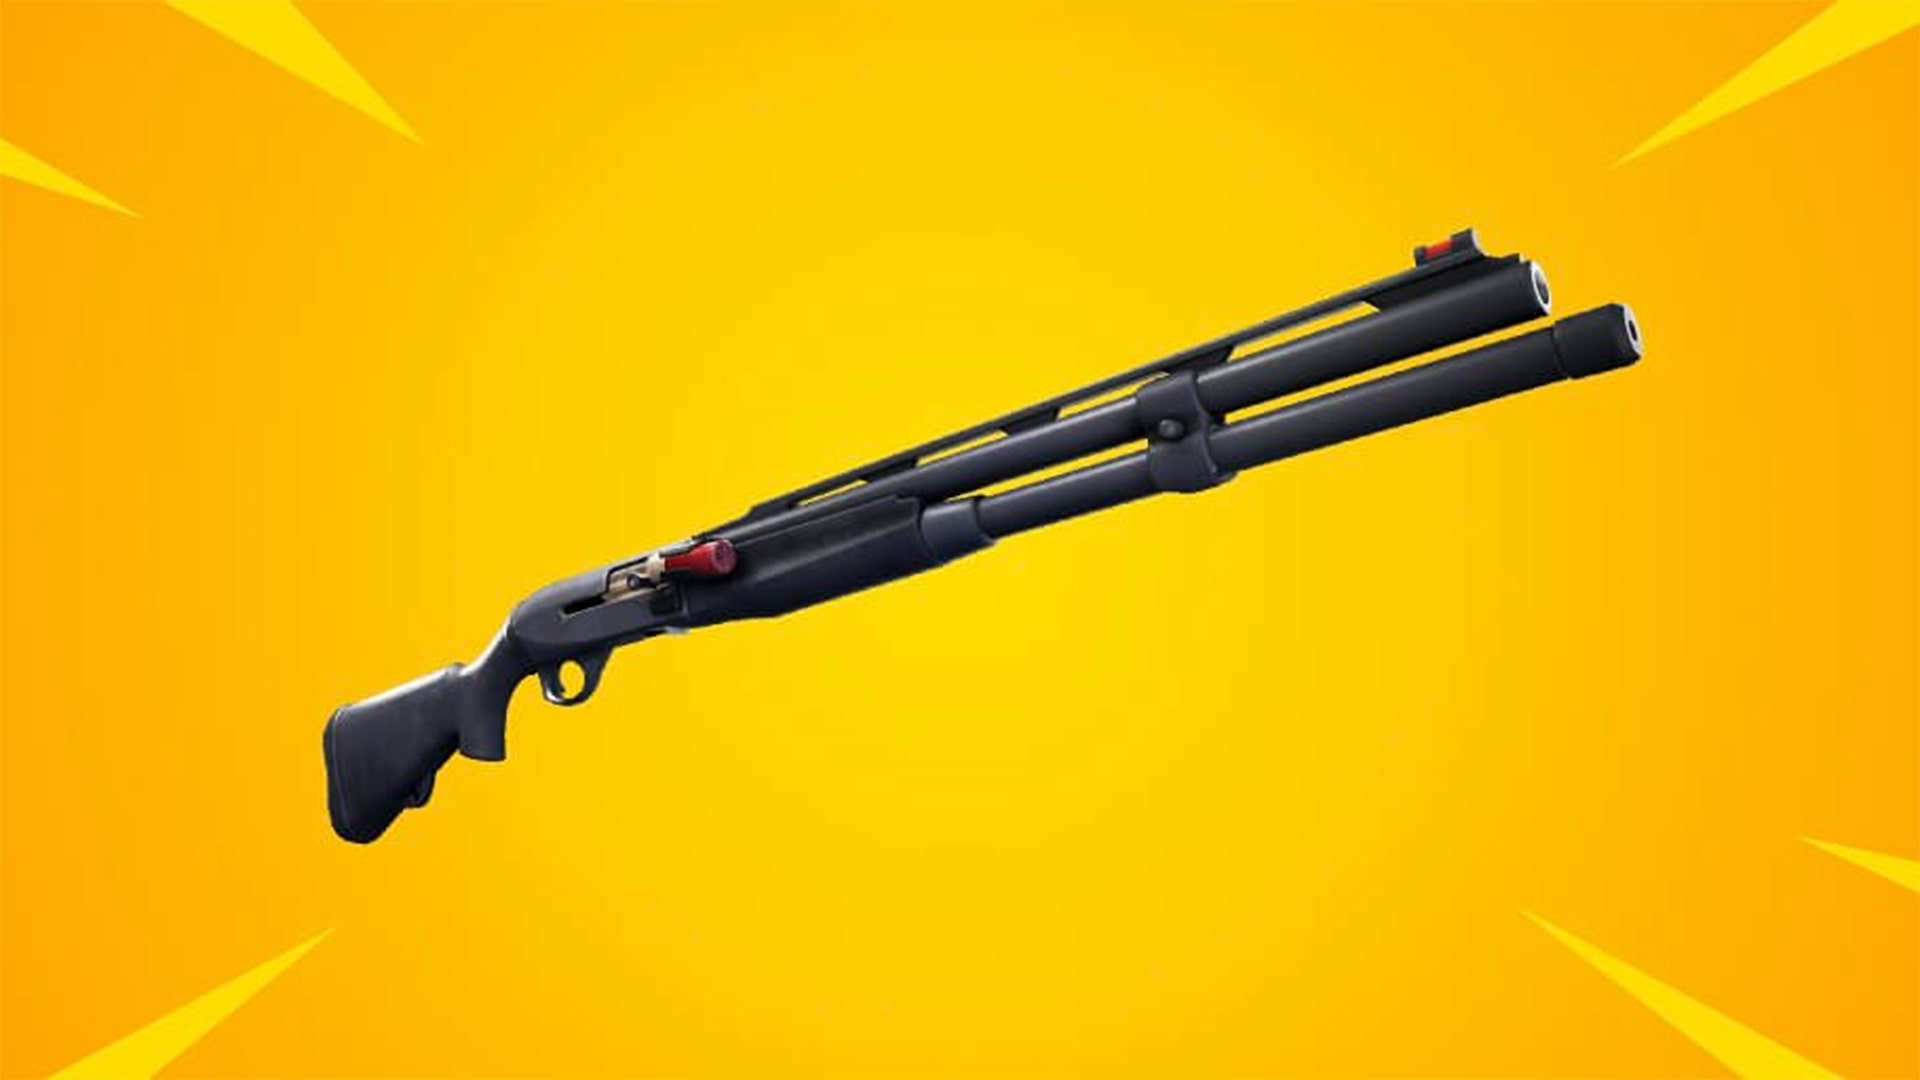 Fortnite Season 9 Everything You Need To Know About New Weapons Wallpapers Supertab Themes